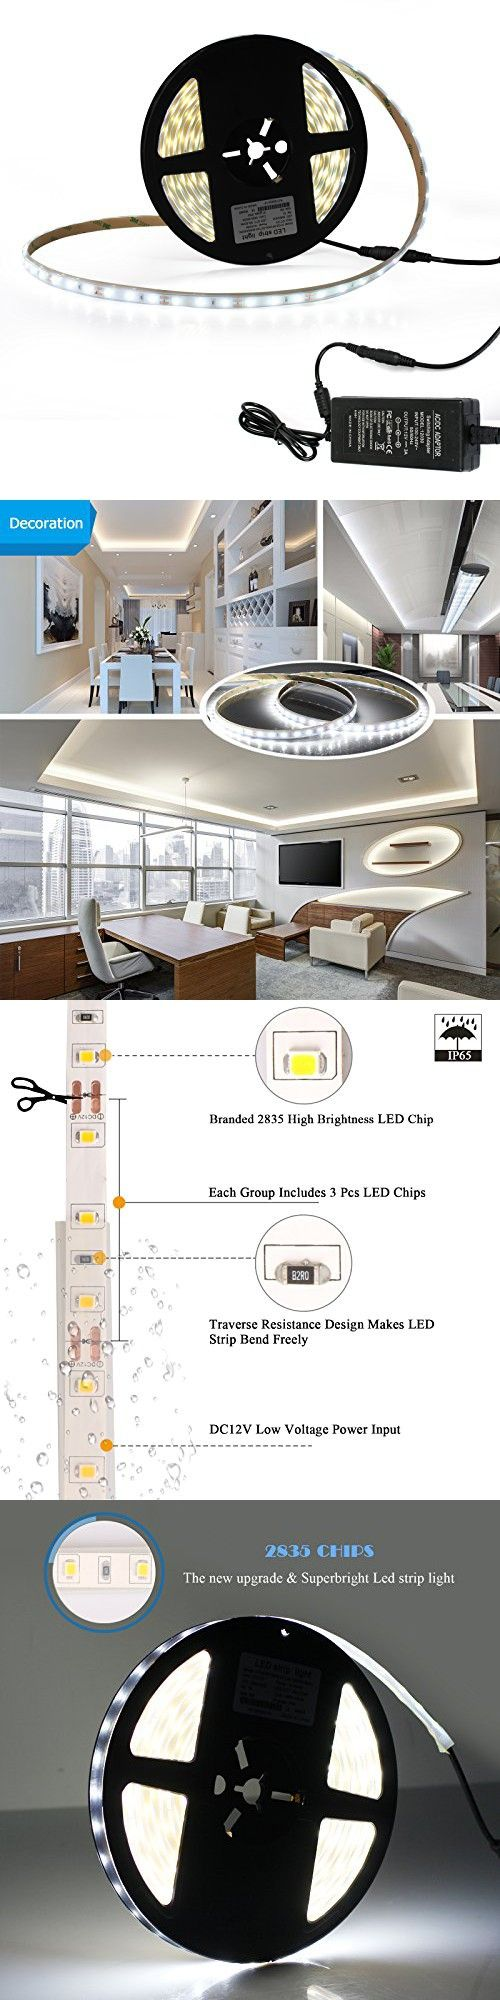 56b5855aab7b775febb4606a3dc0f331 best 25 led tape ideas on pinterest led tape light, strip  at n-0.co